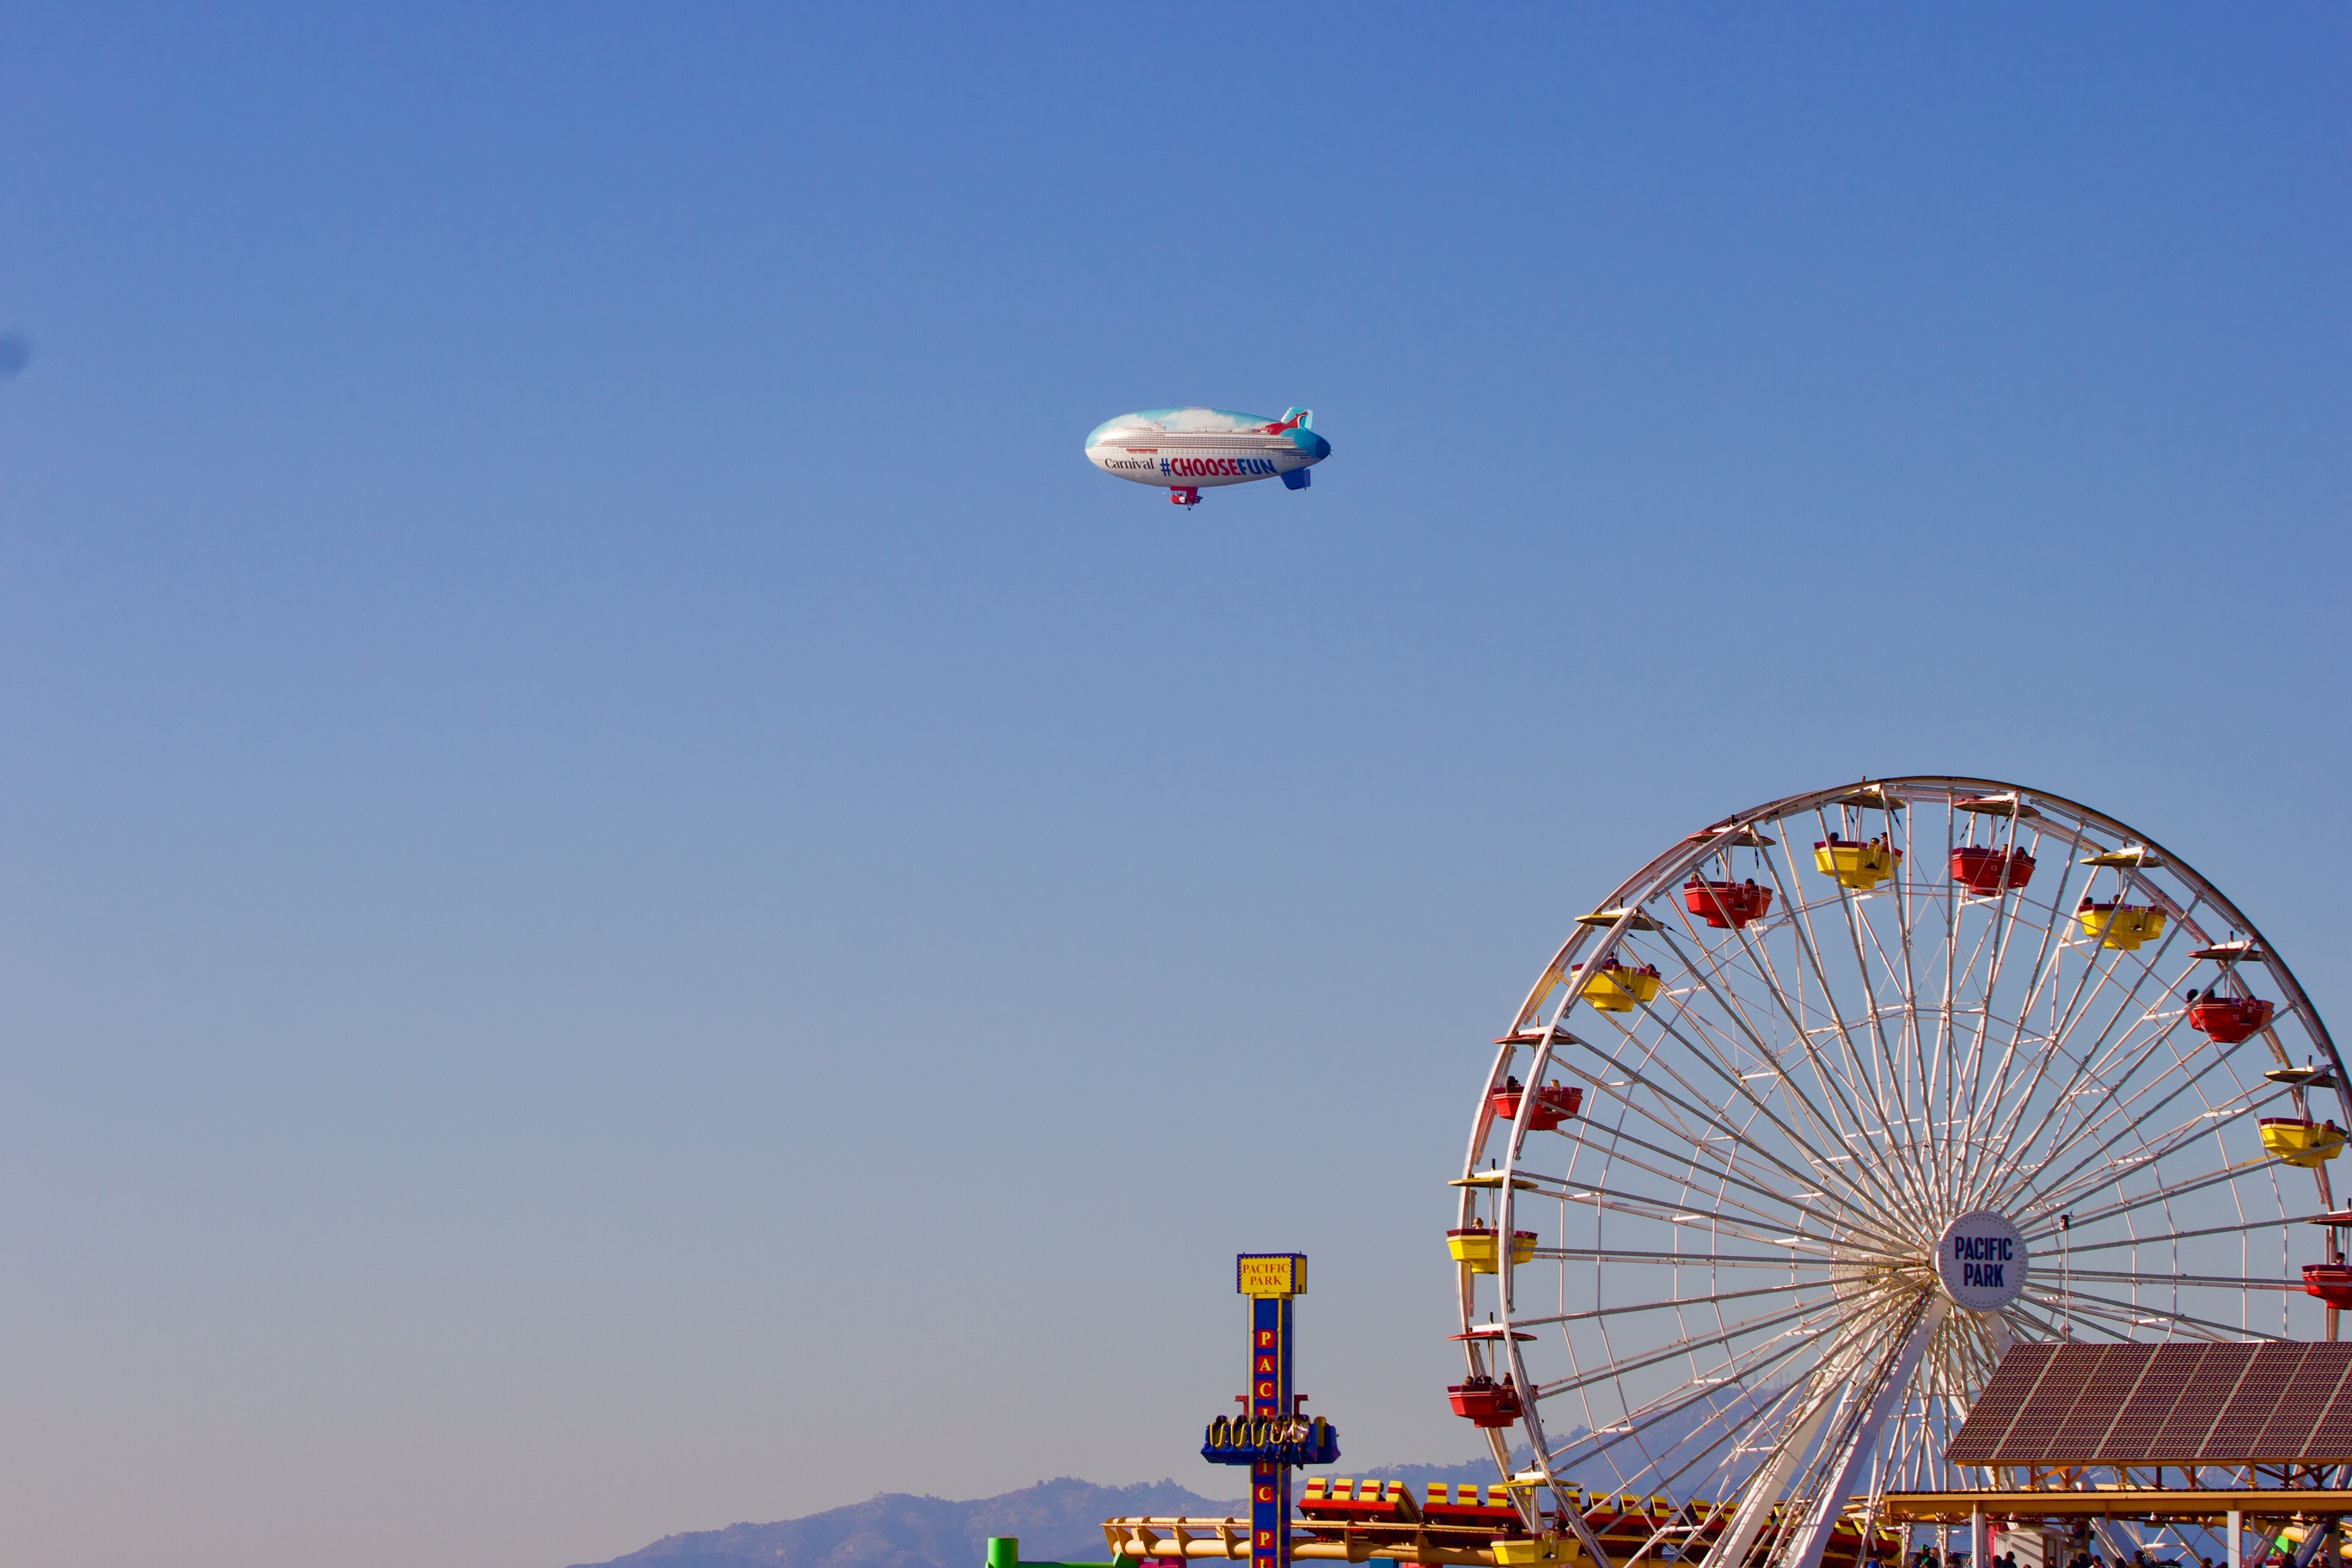 Carnival AirShip Completes First Week Touring Southern California, Flying Above Landmarks, Carnival Ships and More